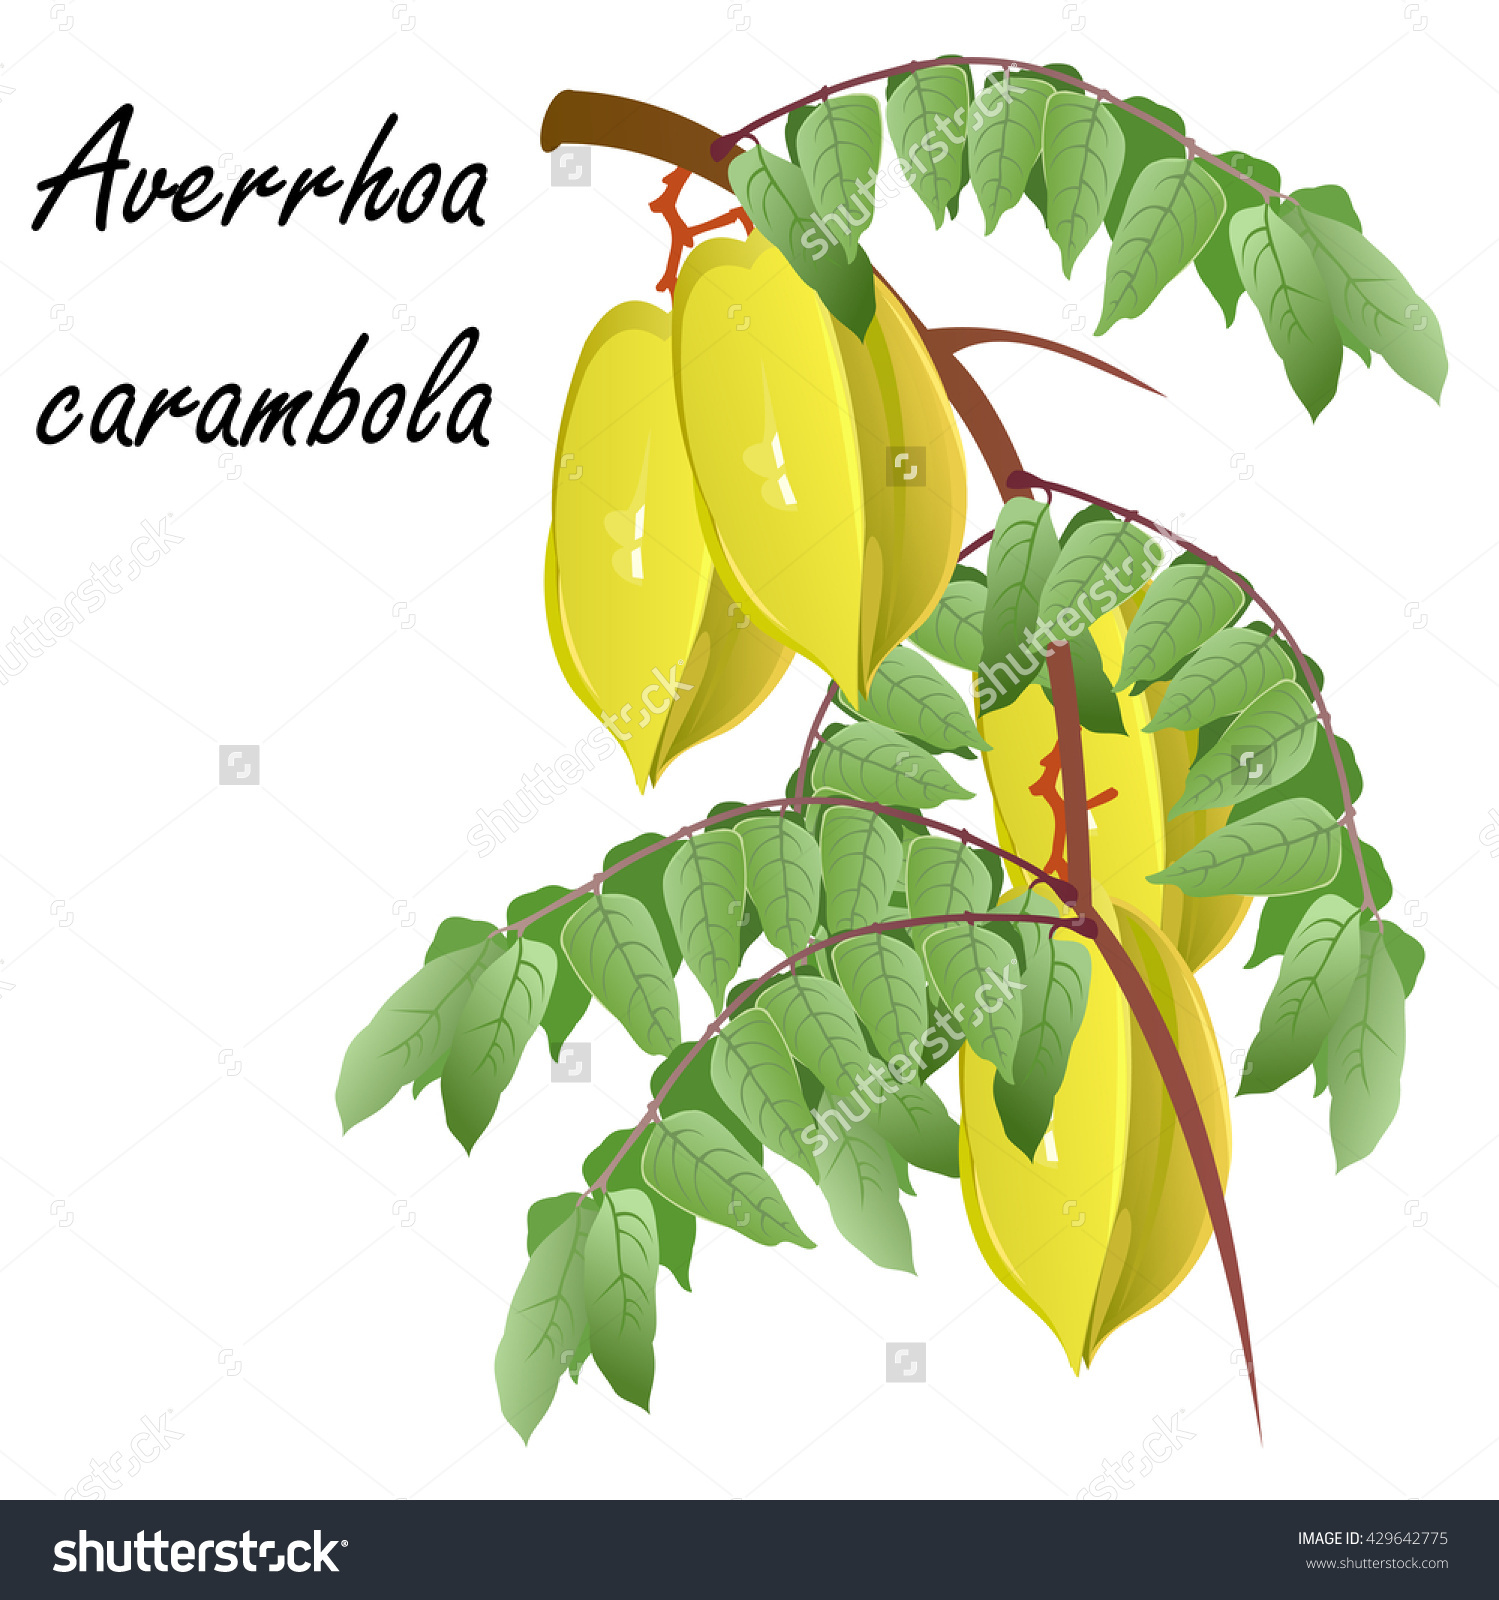 Carambola (Averrhoa Carambola, Star Fruit). Hand Drawn Vector.